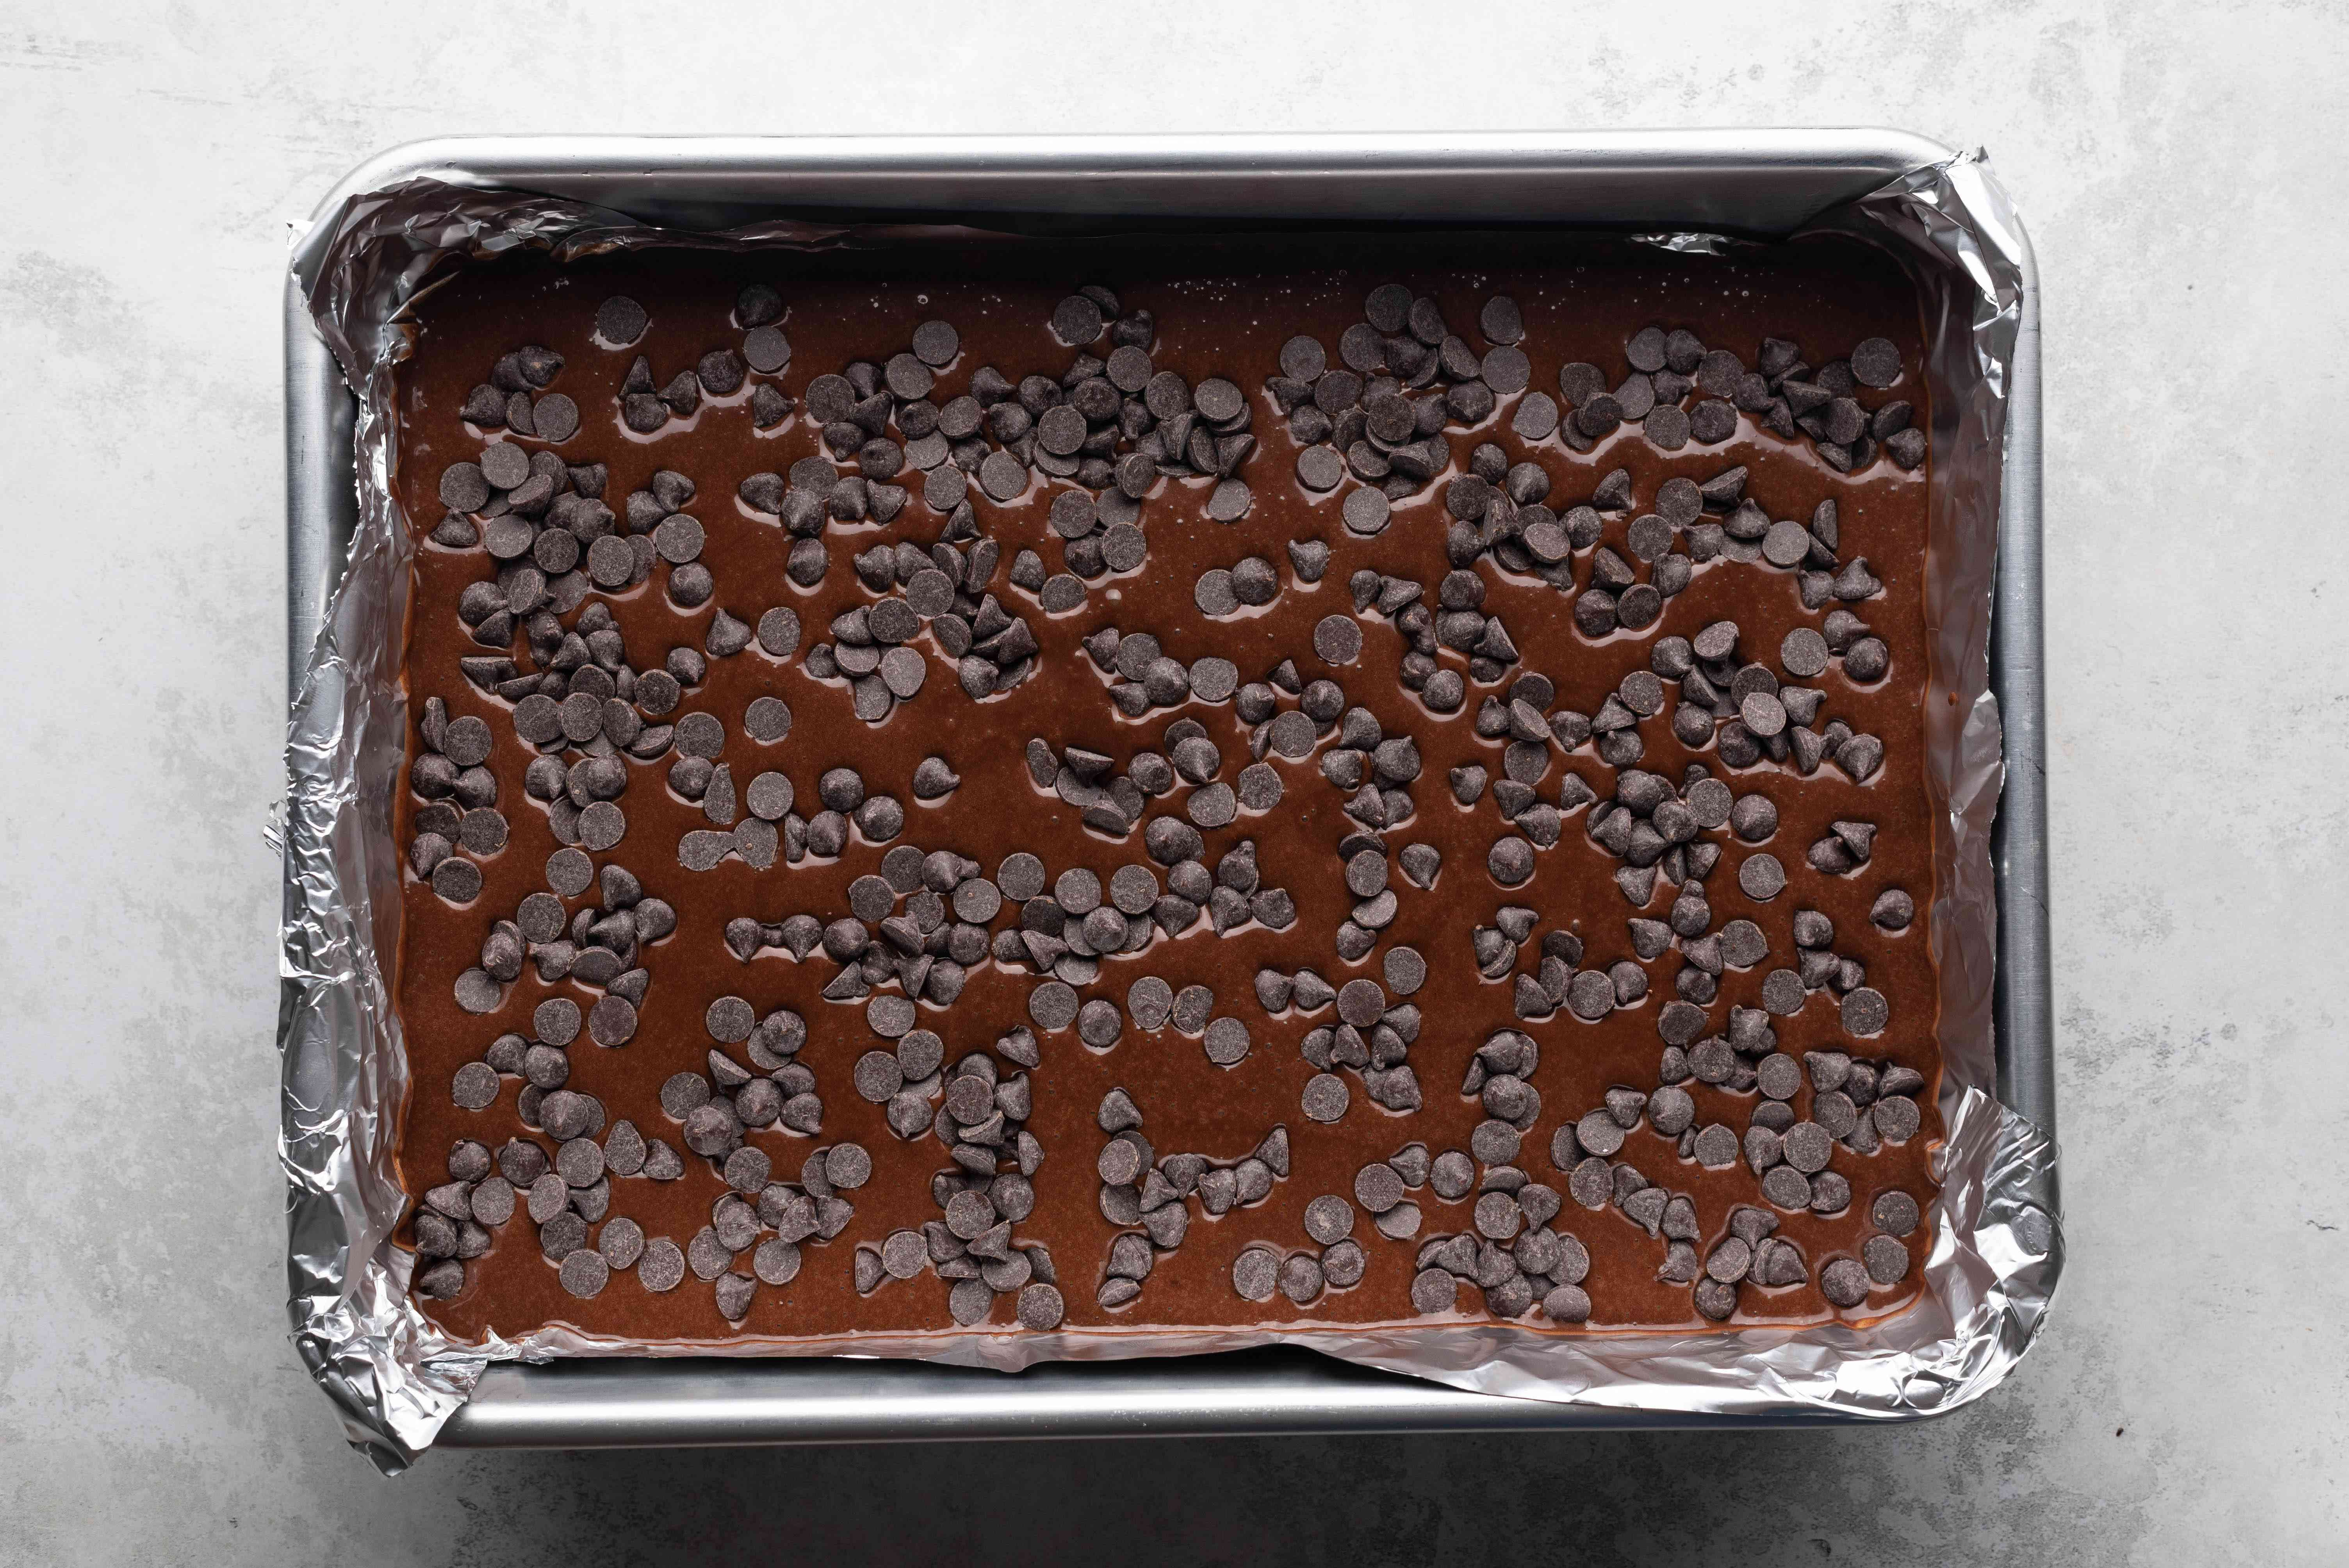 brownie batter in a baking pan, chocolate chips on top